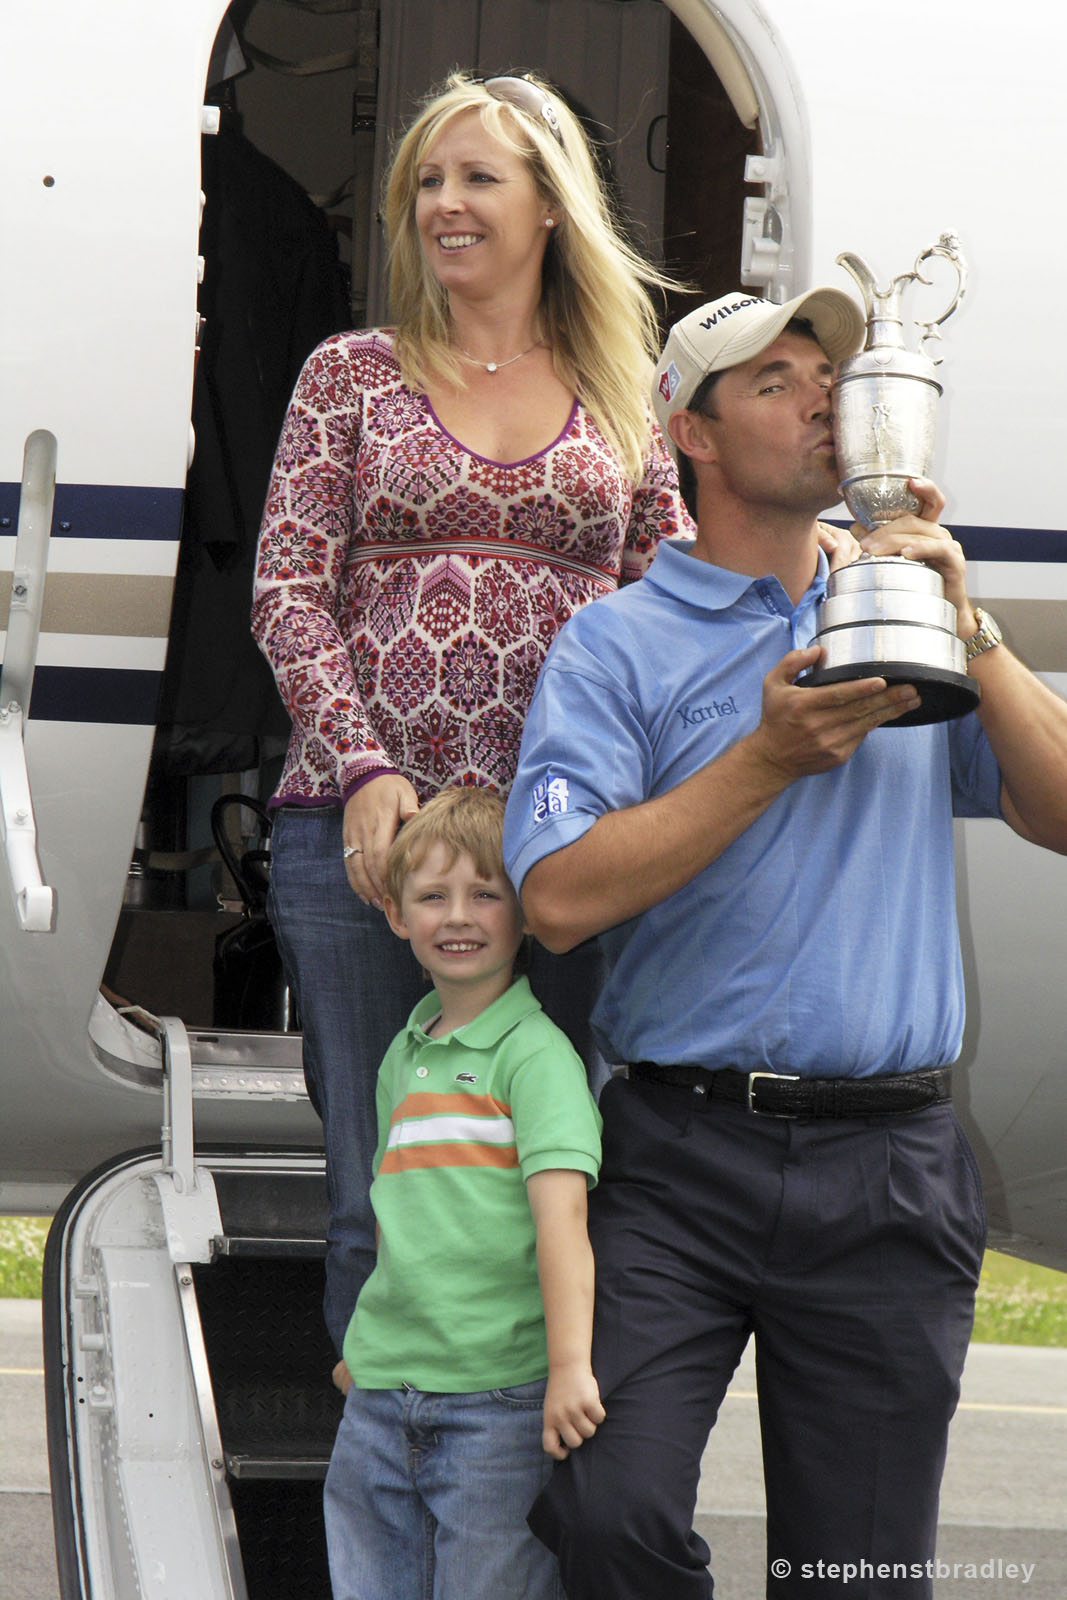 Editorial photographer Dublin portfolio photo 7234957 of Padraig Harrington and family arriving in Ireland after his winning The Open Championship, by Stephen S T Bradley